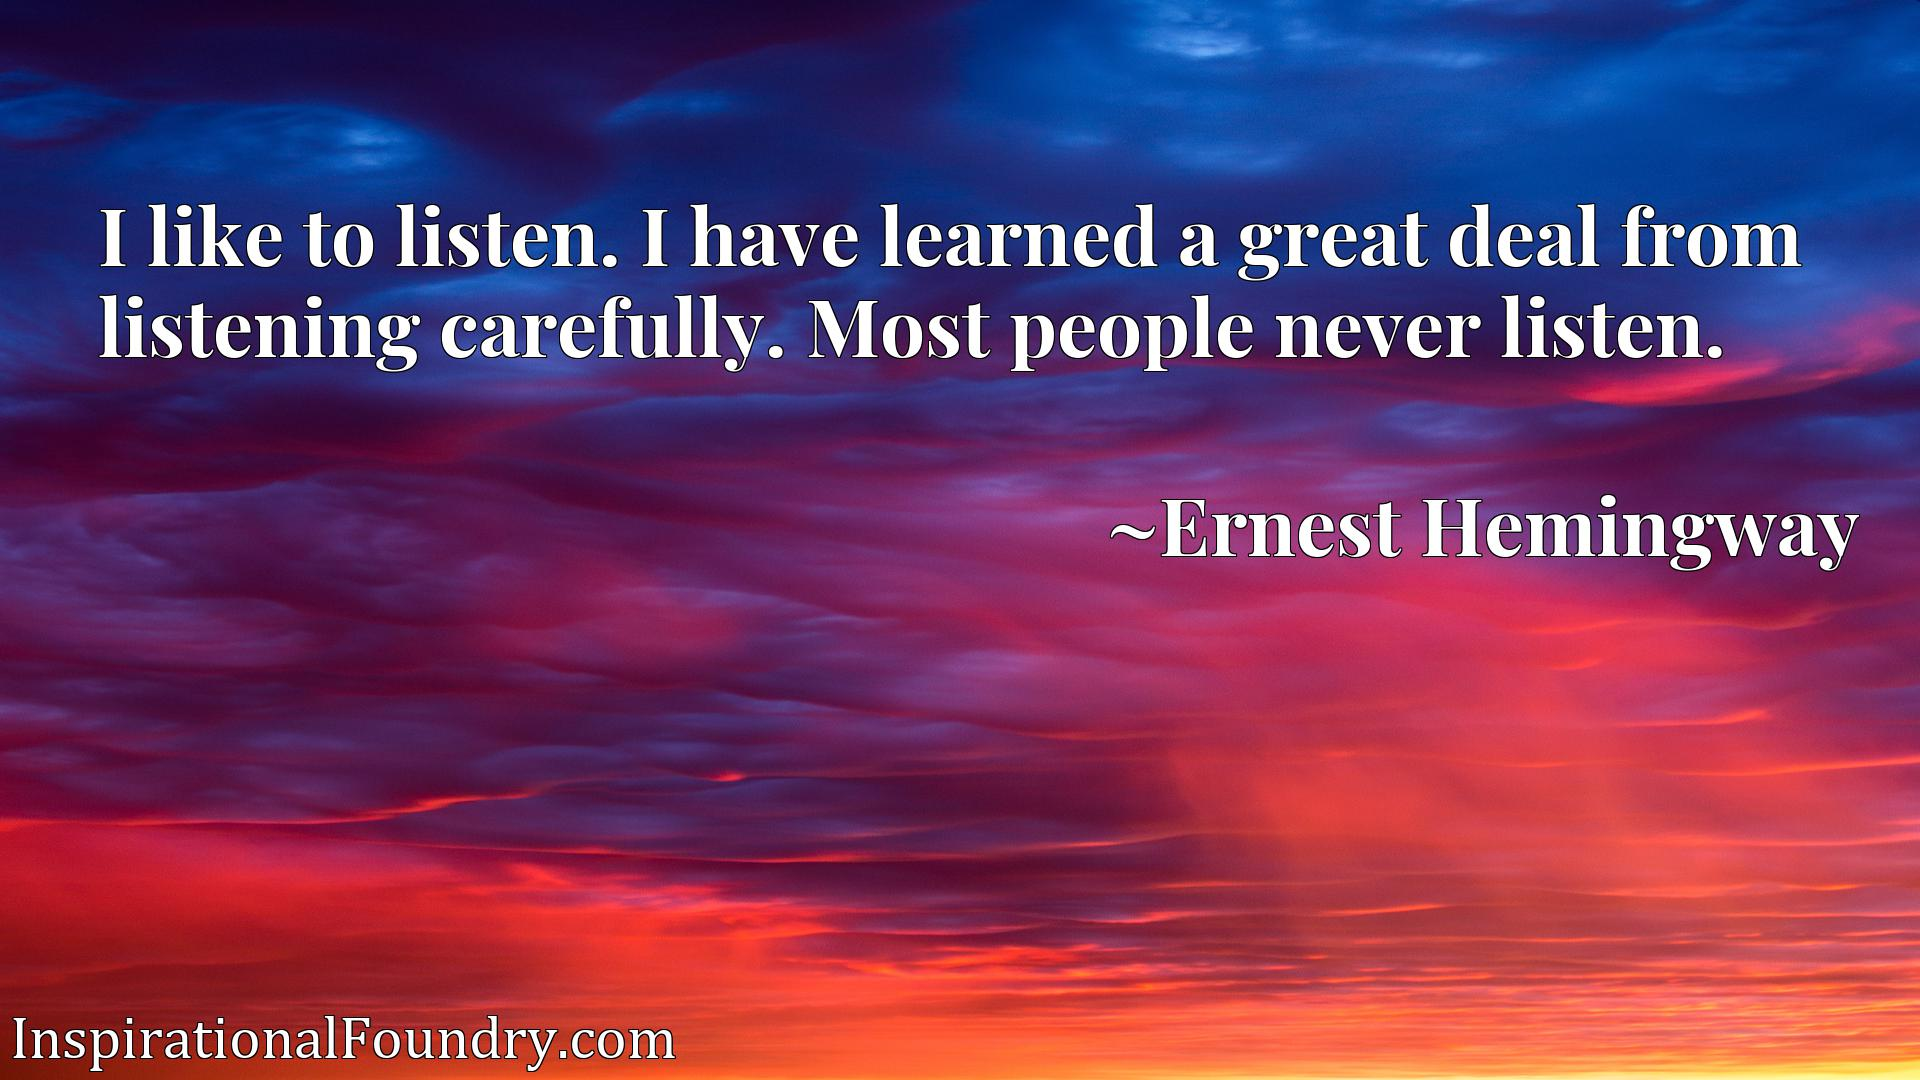 I like to listen. I have learned a great deal from listening carefully. Most people never listen.